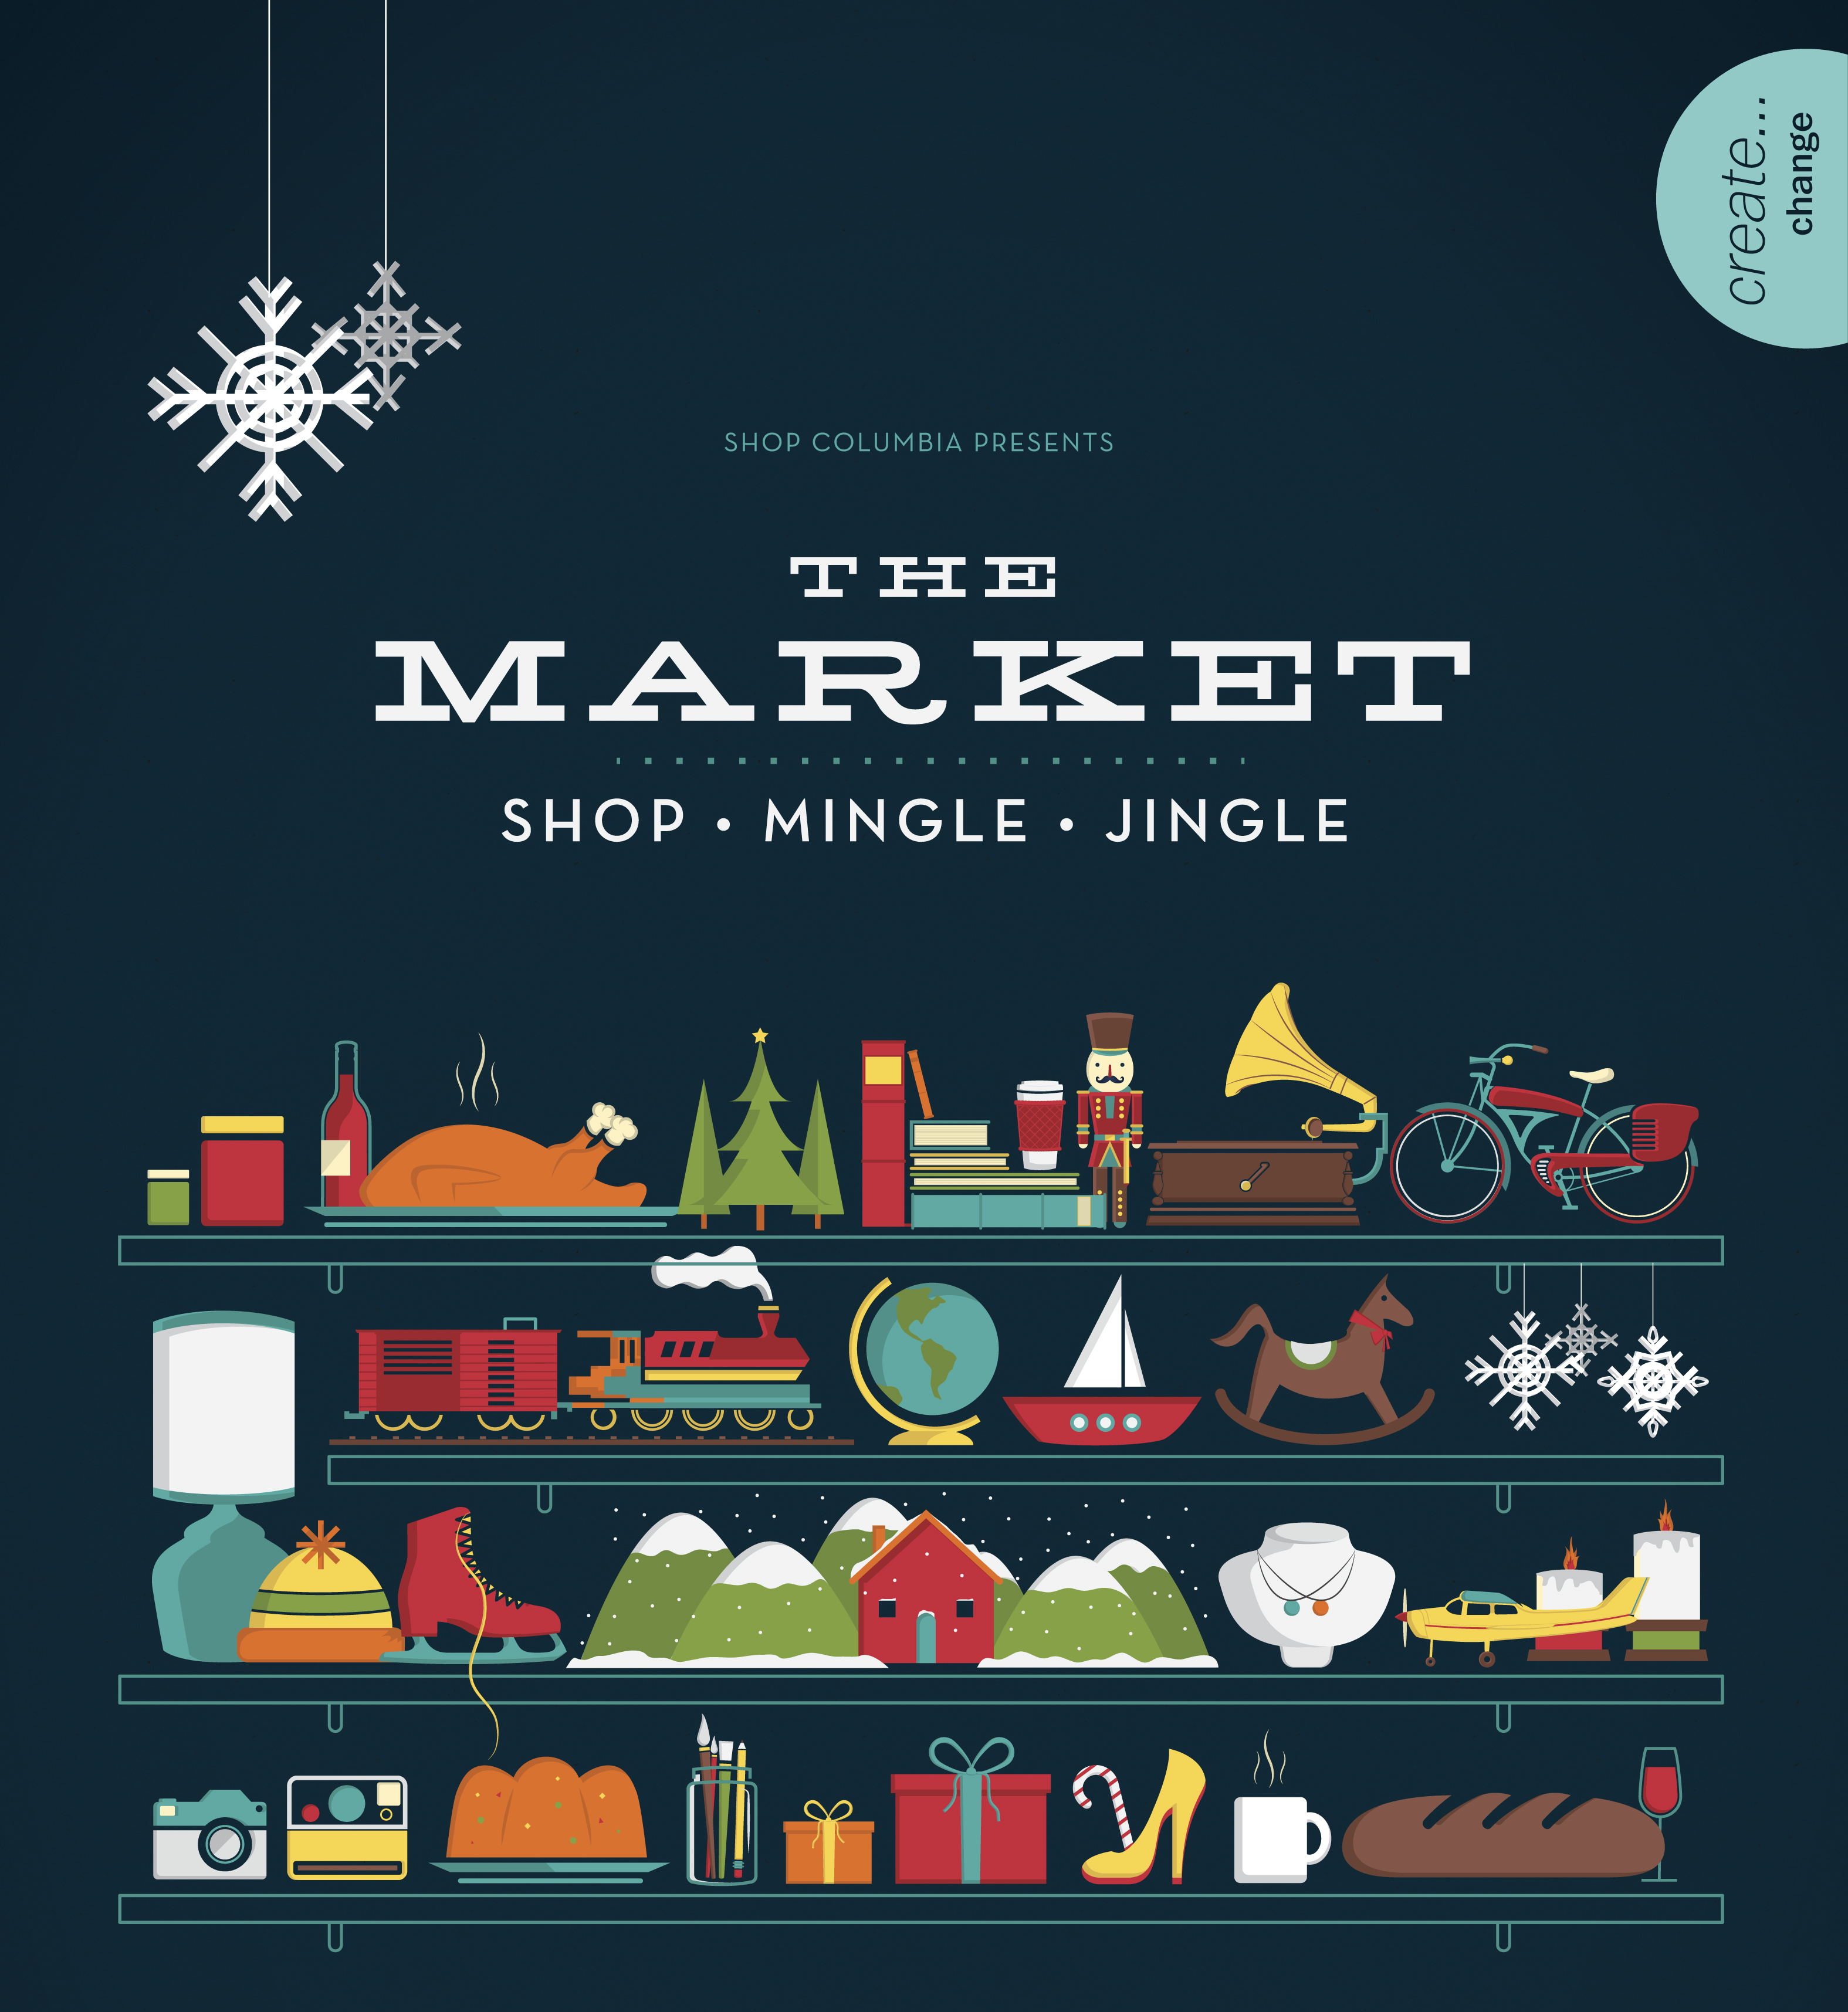 ShopColumbia presents: The Market – Shop, Mingle & Jingle